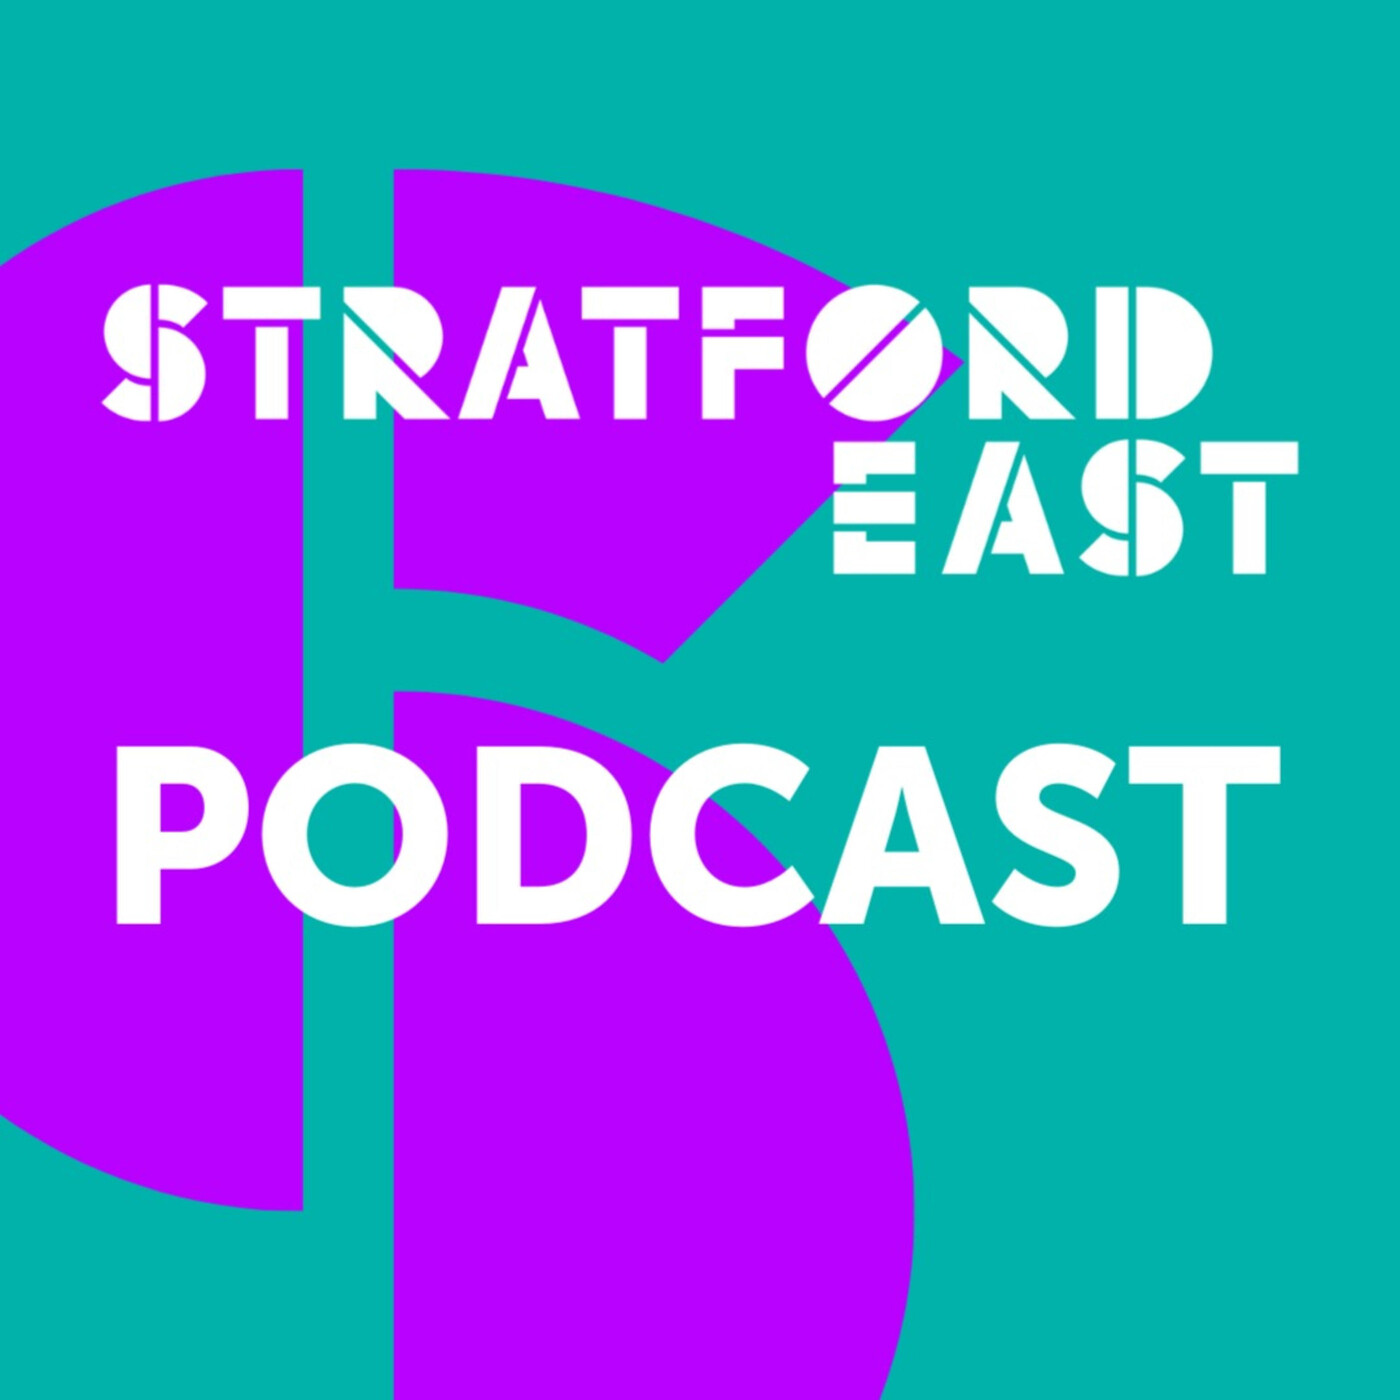 Stratford East Podcast - Episode 14 - Spotlight on Freelancers: Ben Quahsie